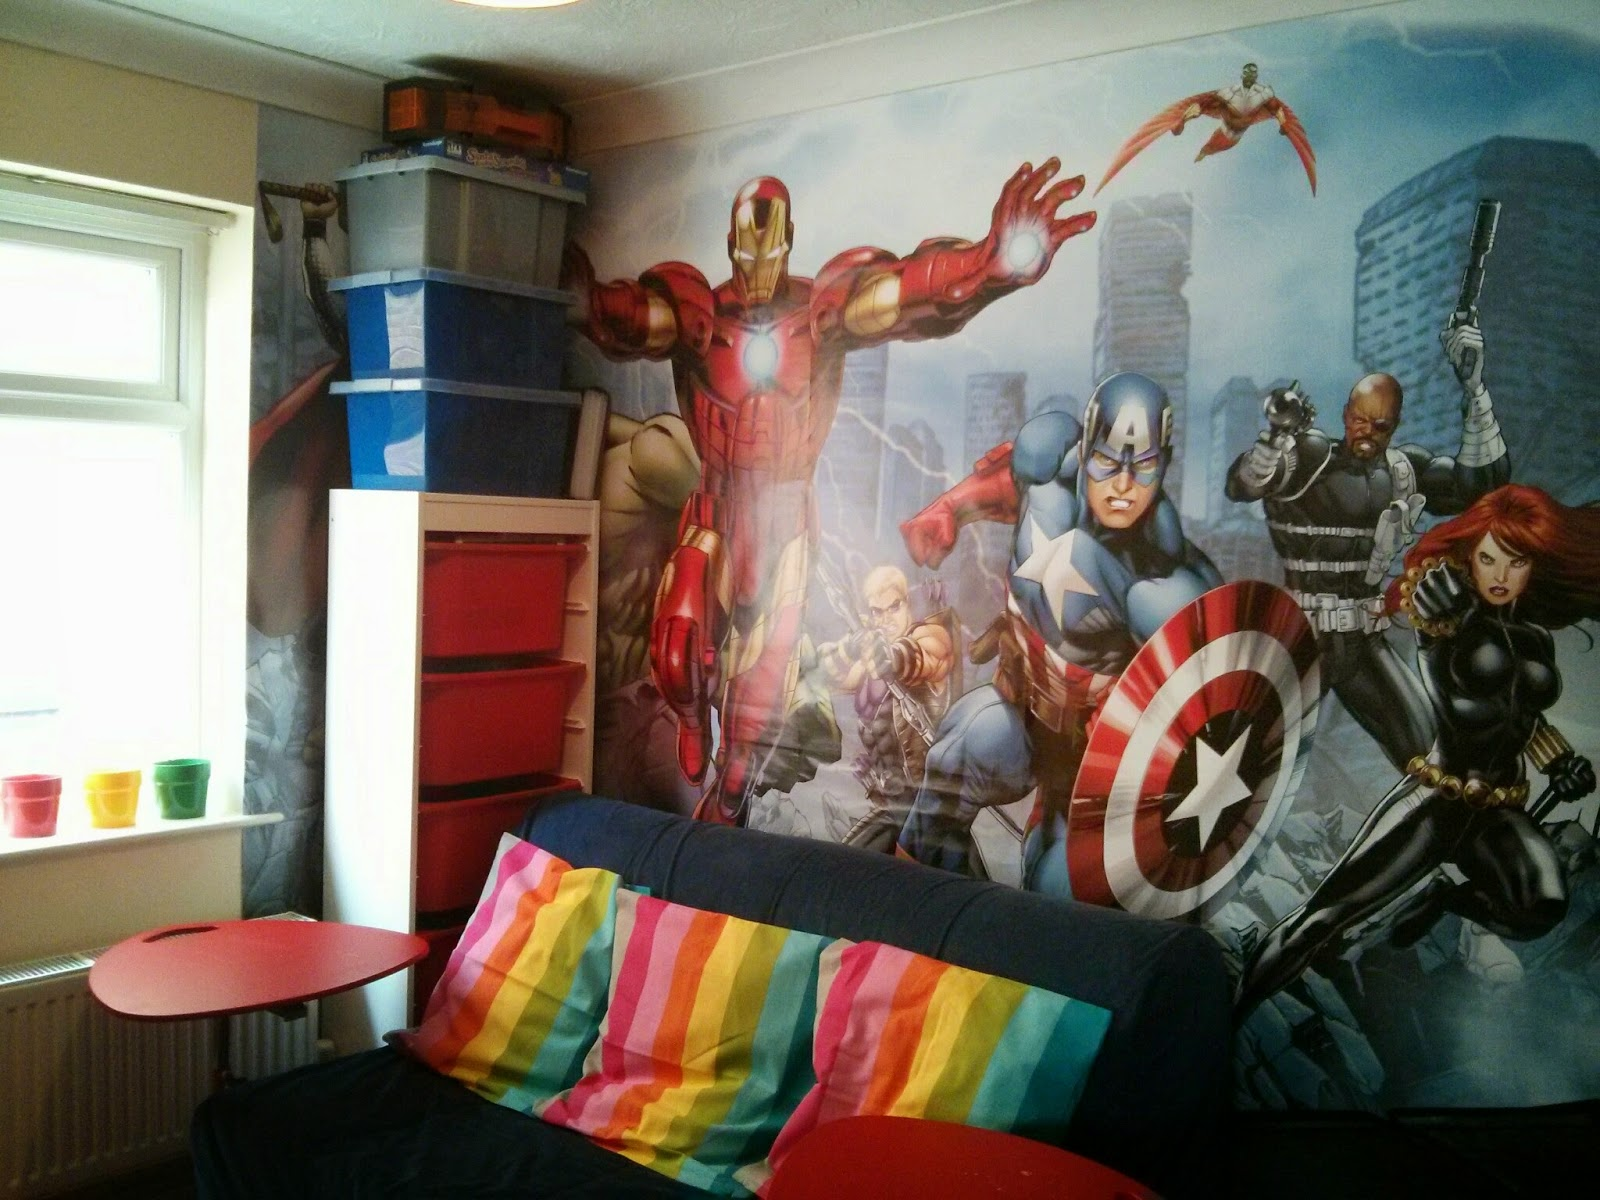 Dulux Marvel Avengers Bedroom In A Box Officially Awesome: Dulux Marvel Avengers Bedroom In A Box